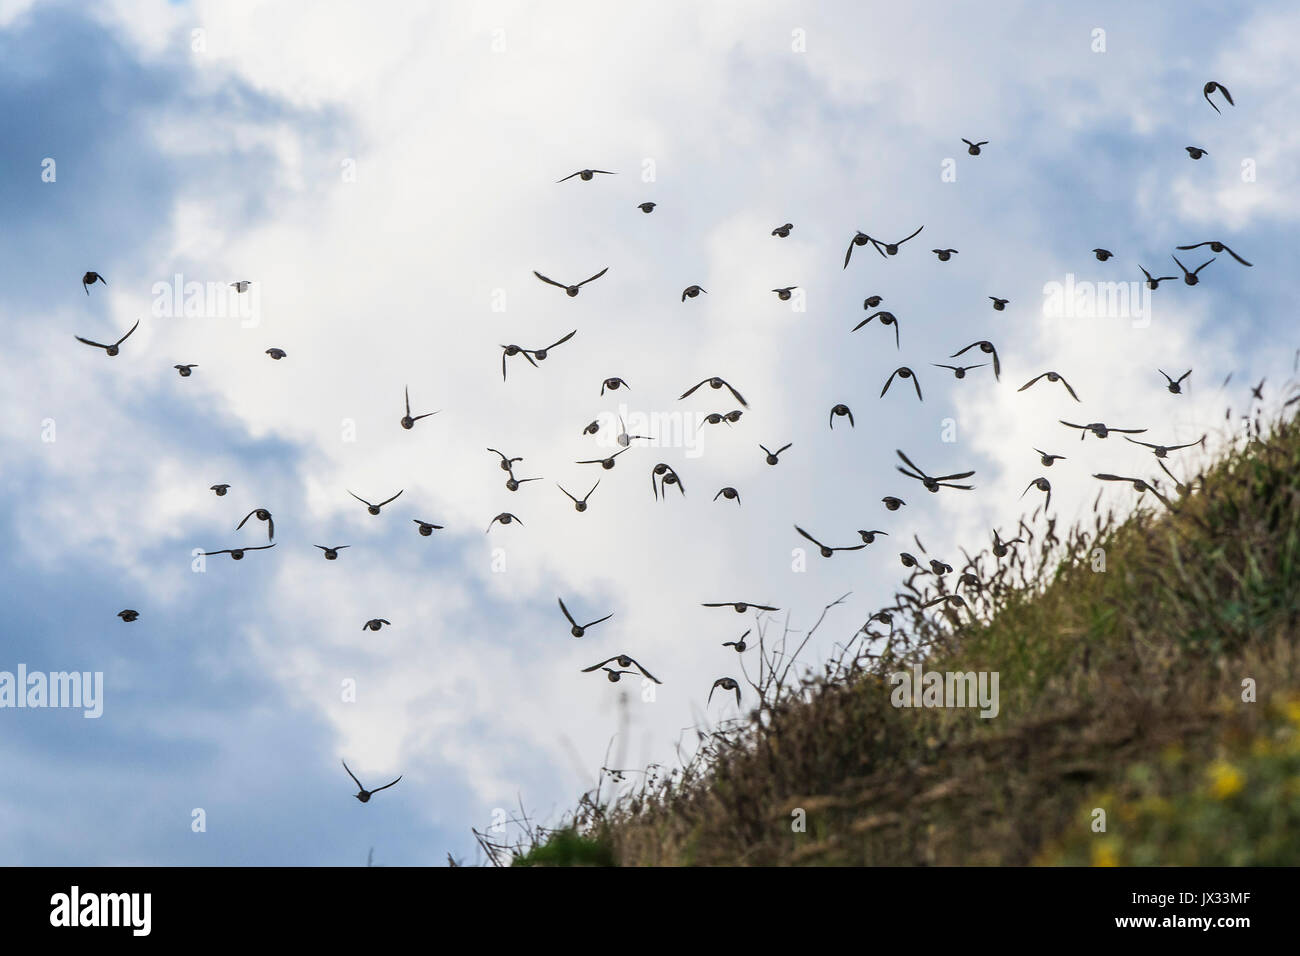 A flock of starlings seen against the sky. - Stock Image